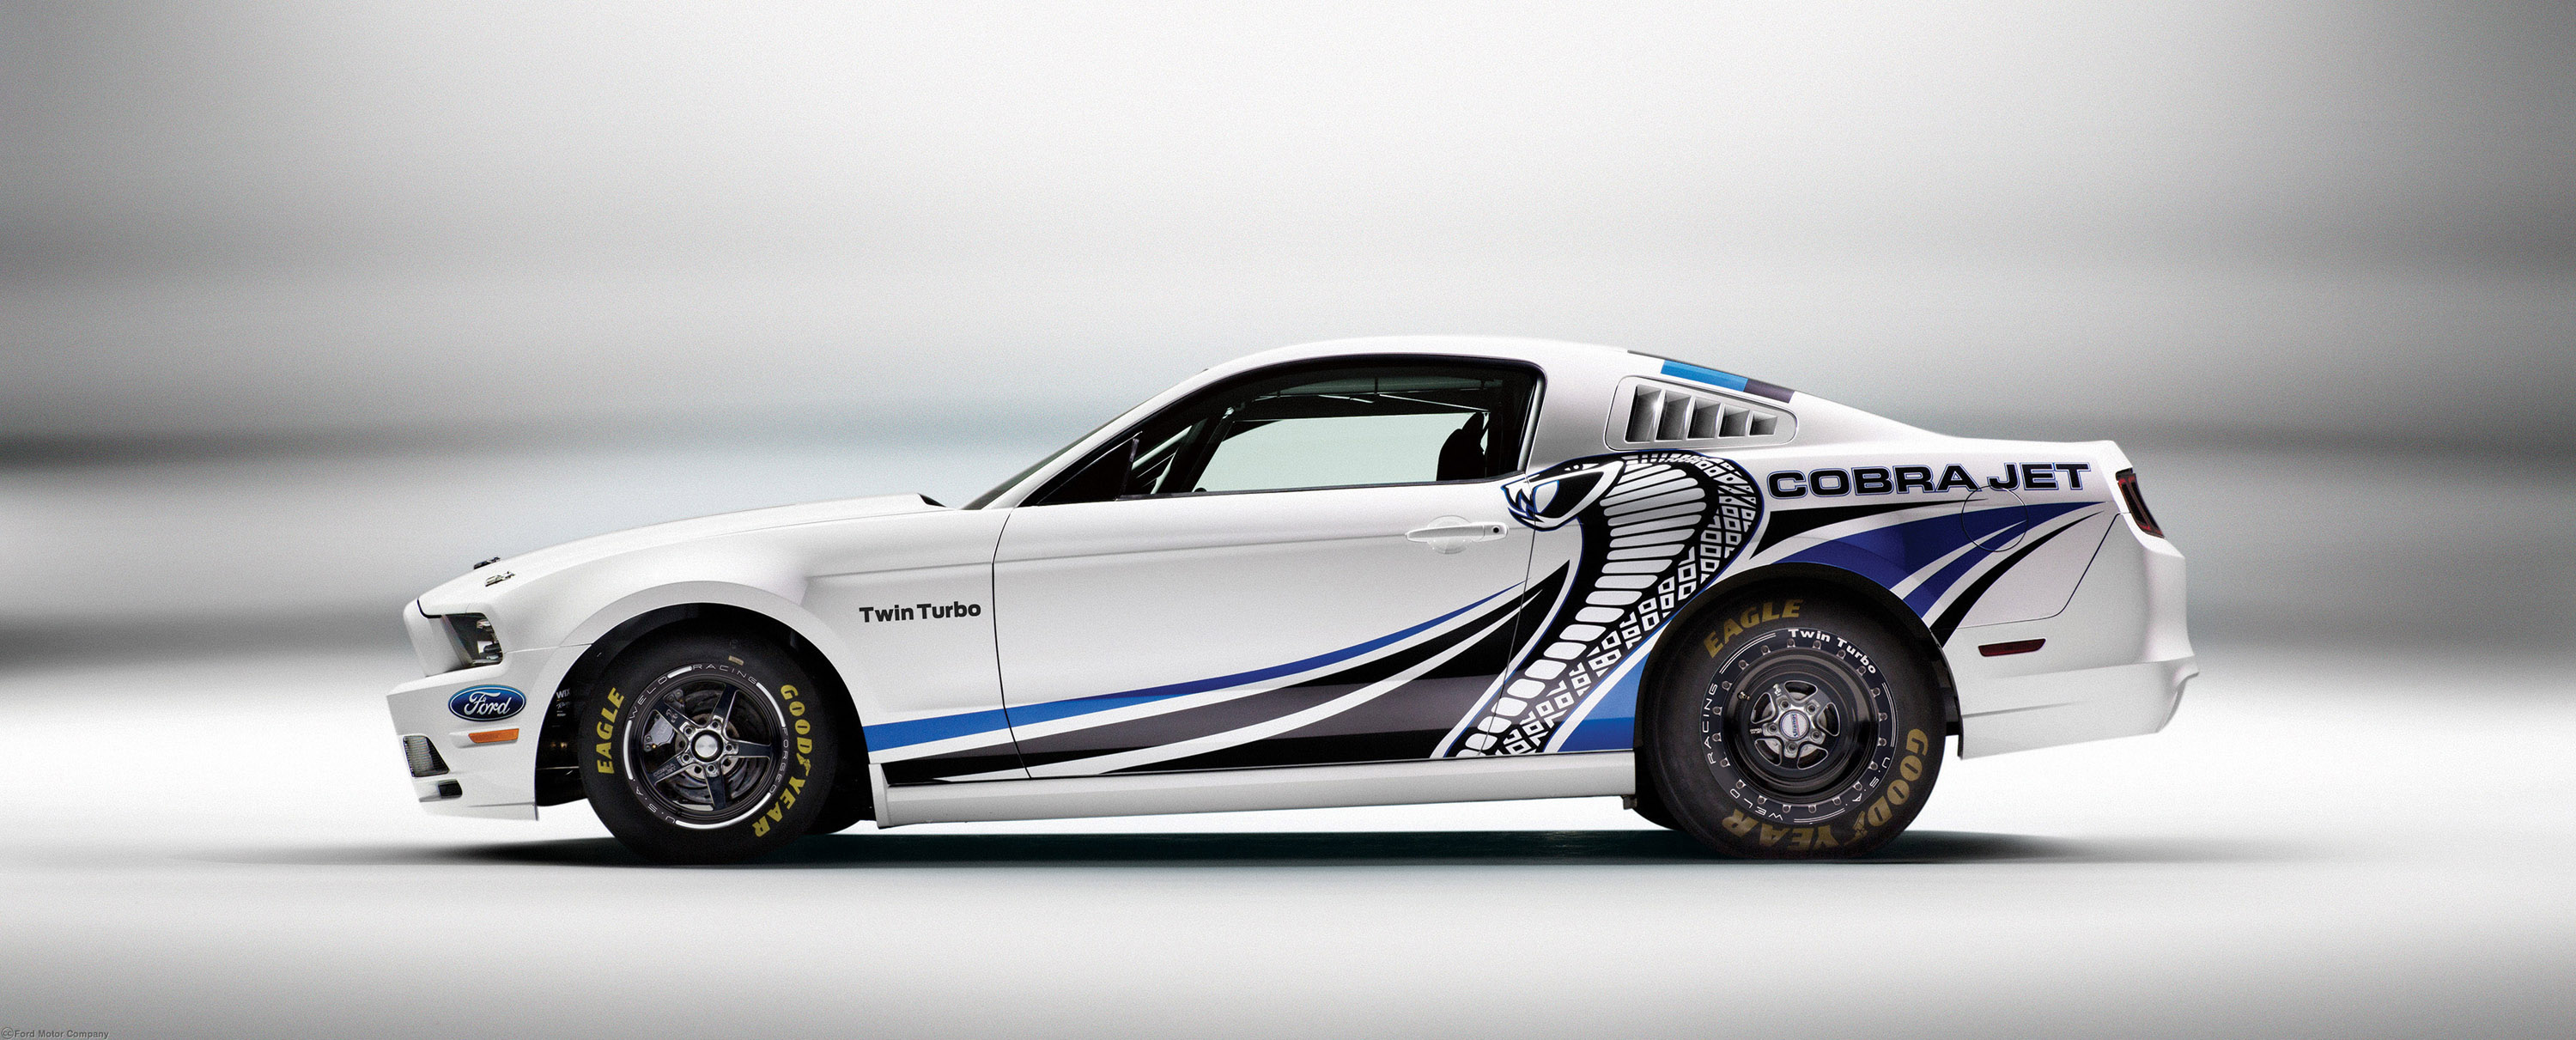 Ford Mustang Cobra Jet Twin Turbo Full Hd Wallpaper And